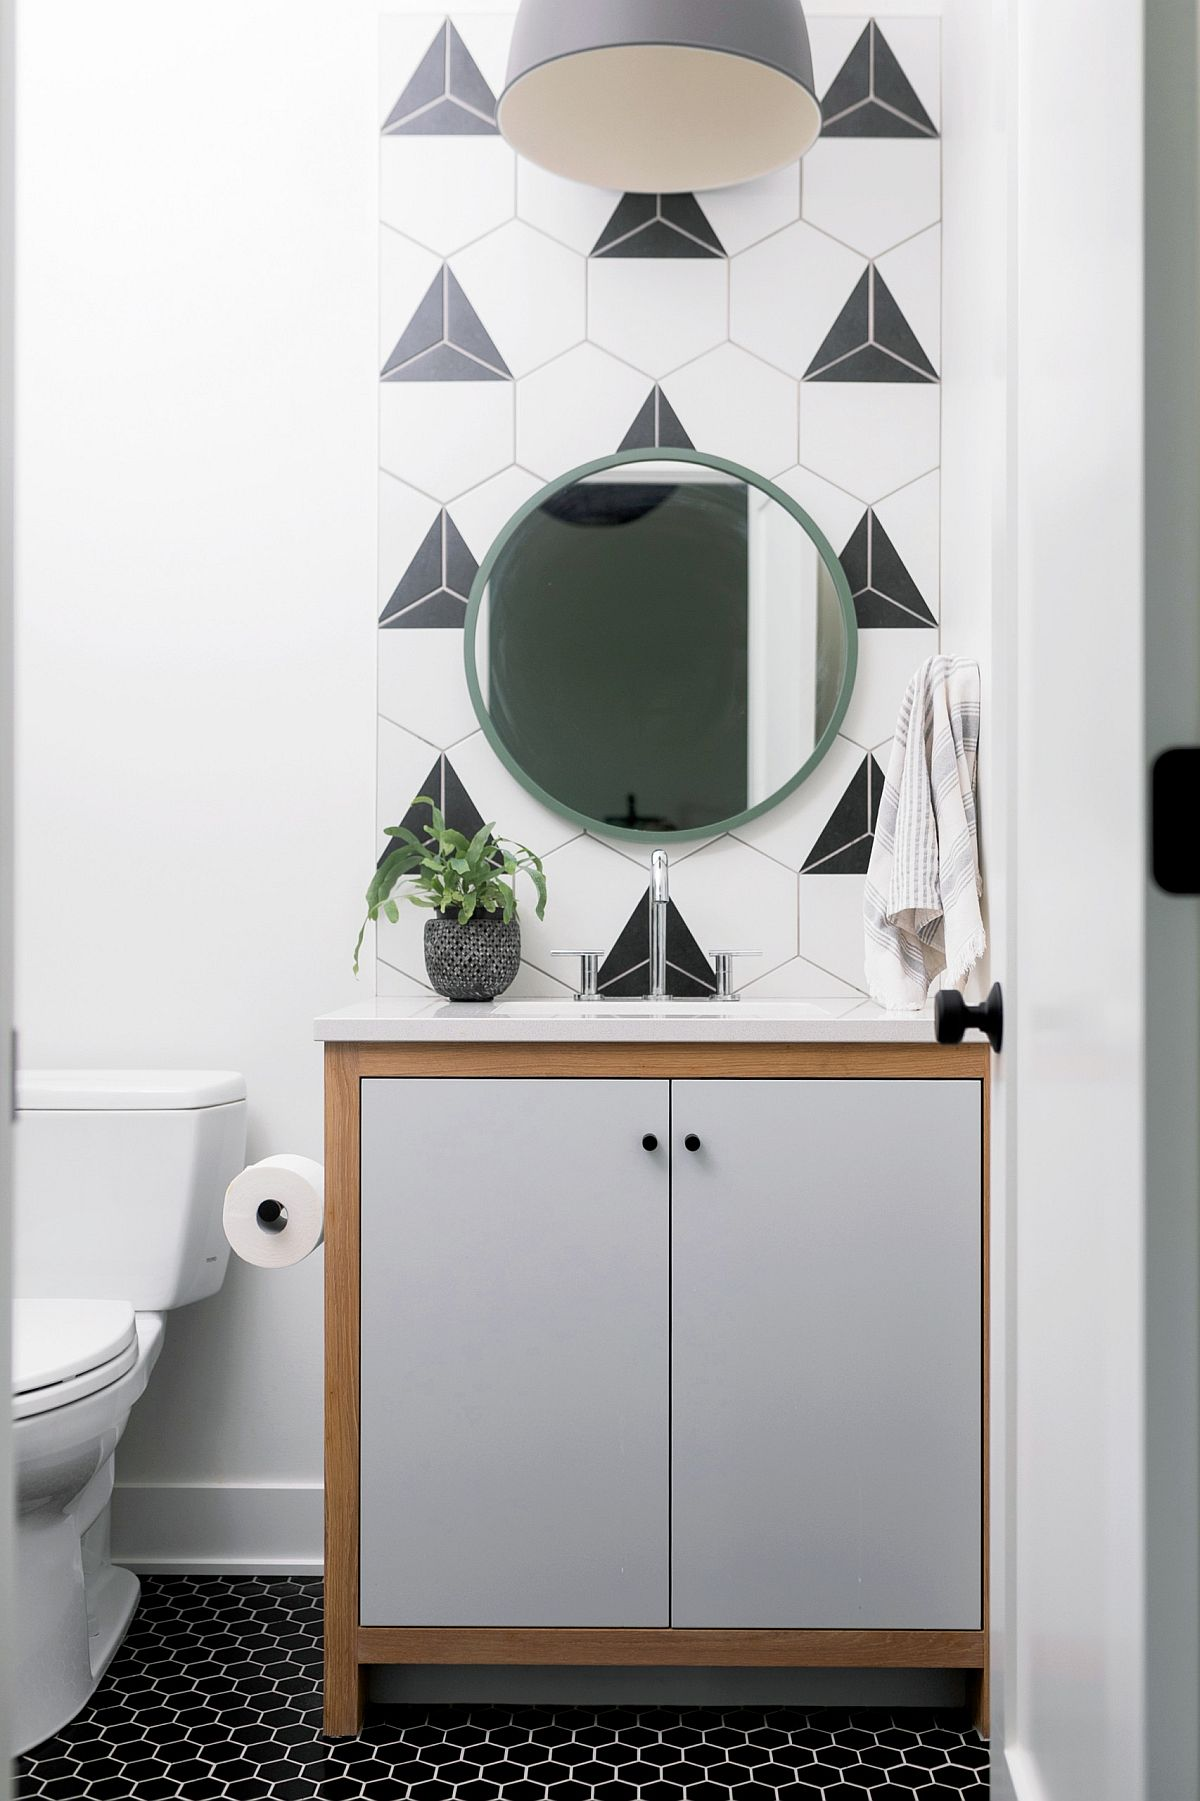 Contemporay powder room in black, white and graywith hexagonal tiles in the backdrop and dark hexagonal floor tiles